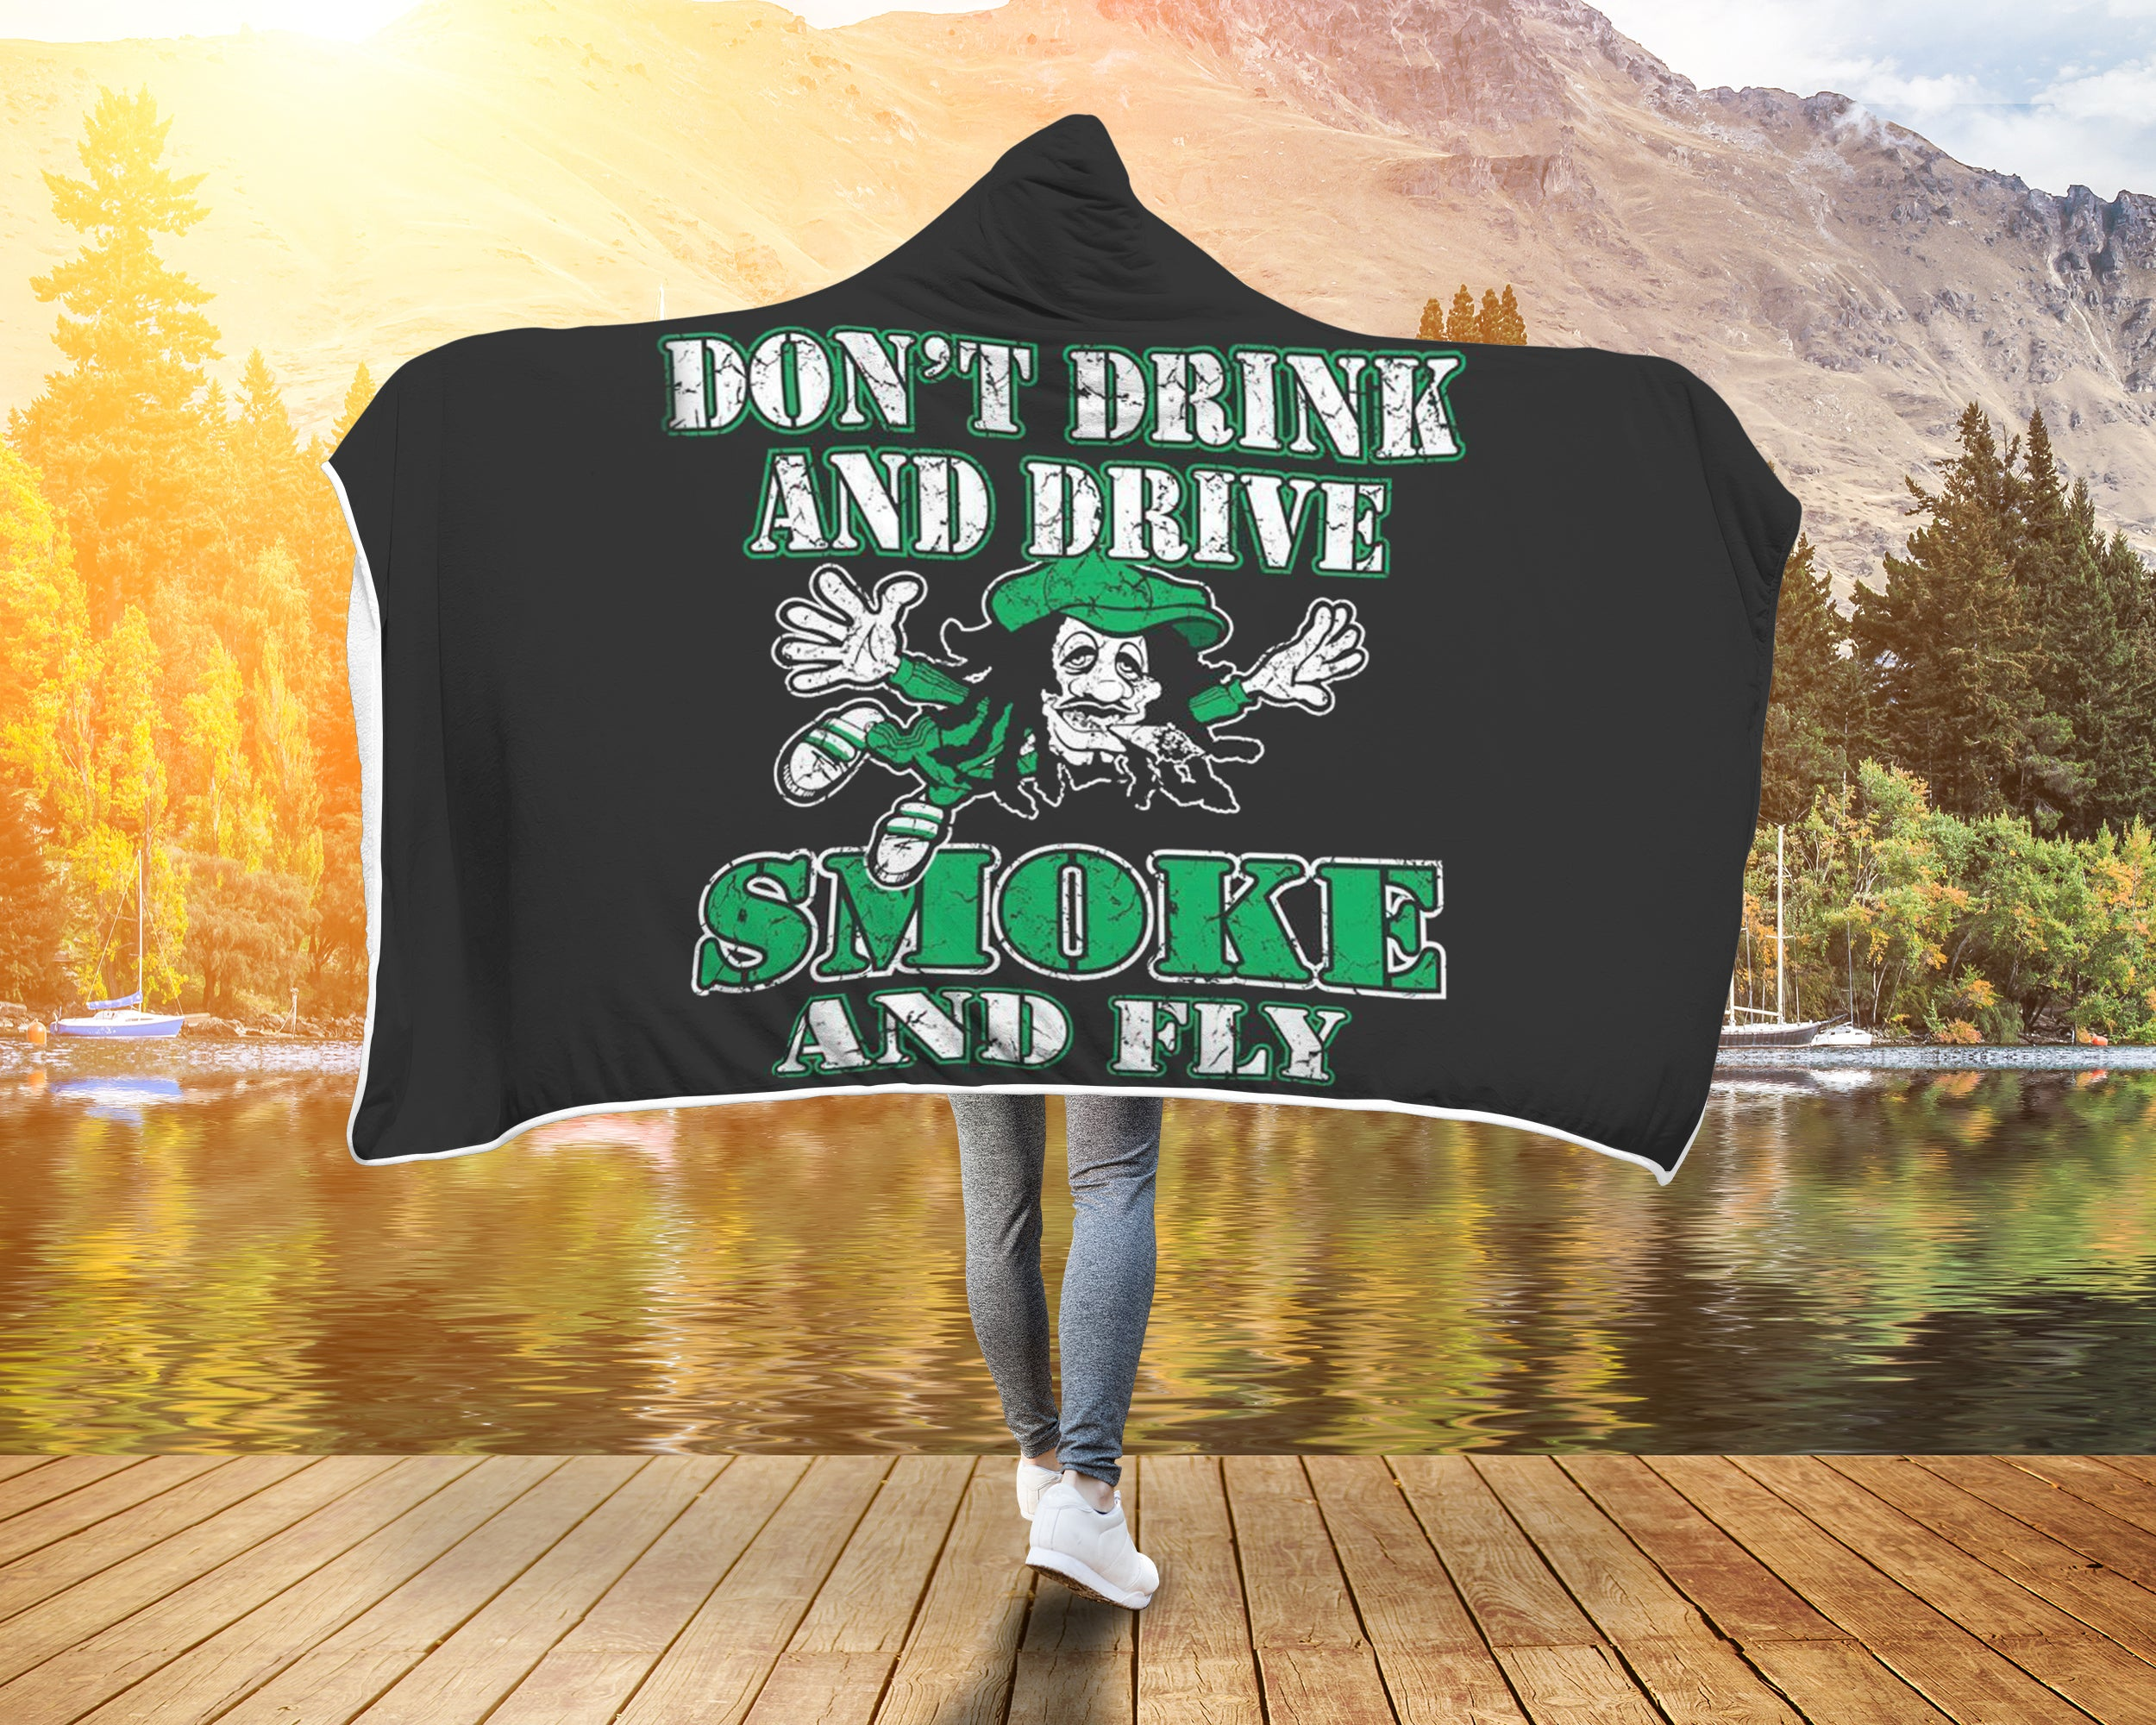 Weed Hoodie Hooded Blanket Marijuana Smoke And Fly